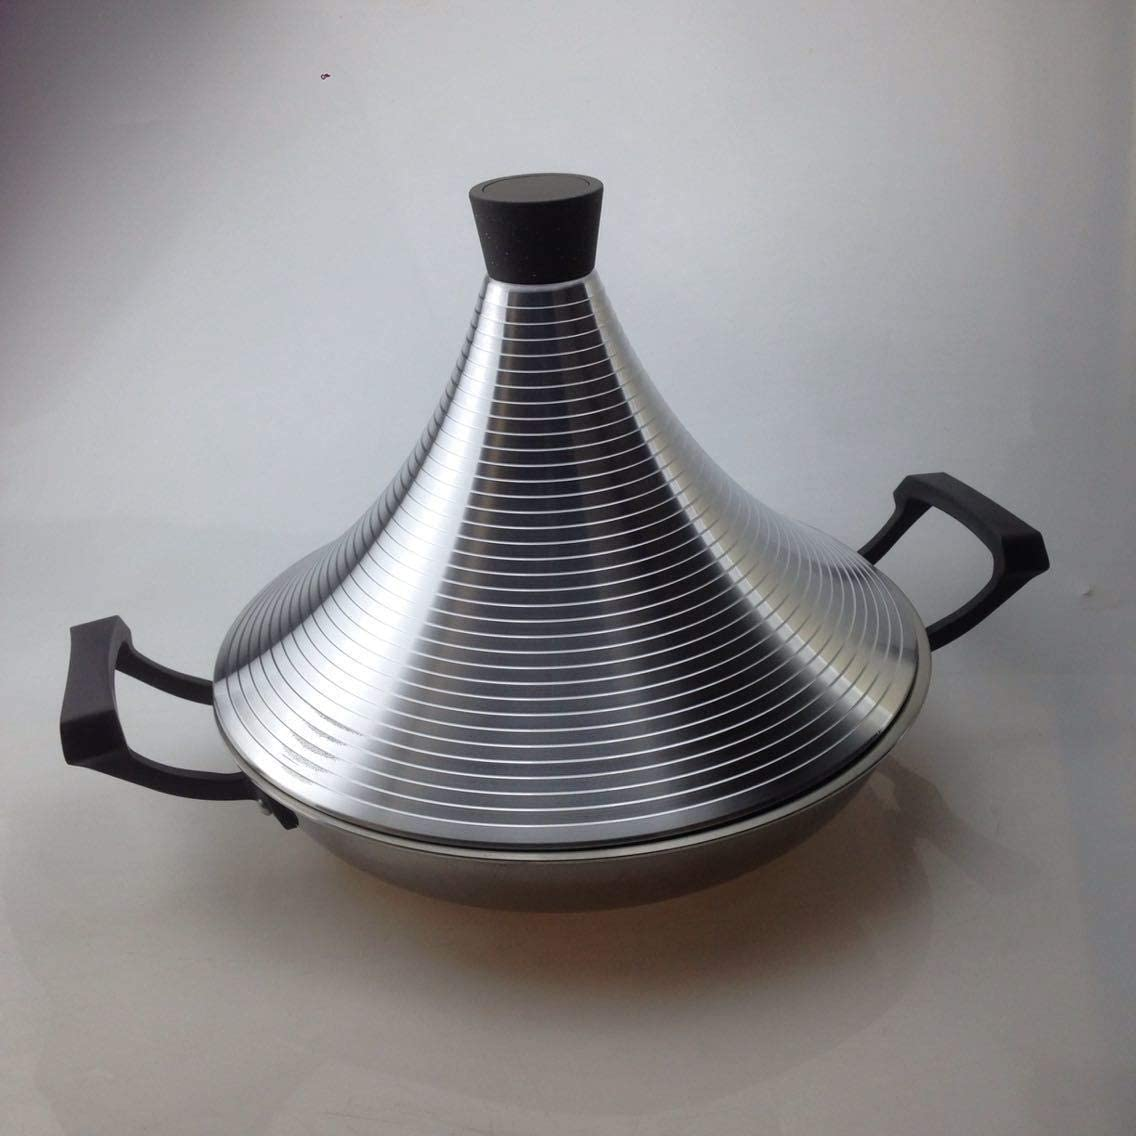 Non Stick Tagine Taji Pot Stainless Steel Tower Stew Dry Pot Seafood High Lid Pan Electromagnetic Cooker Moroccan Tajine Non-stick Slow Cooker 21-304 (Color : 38cm)